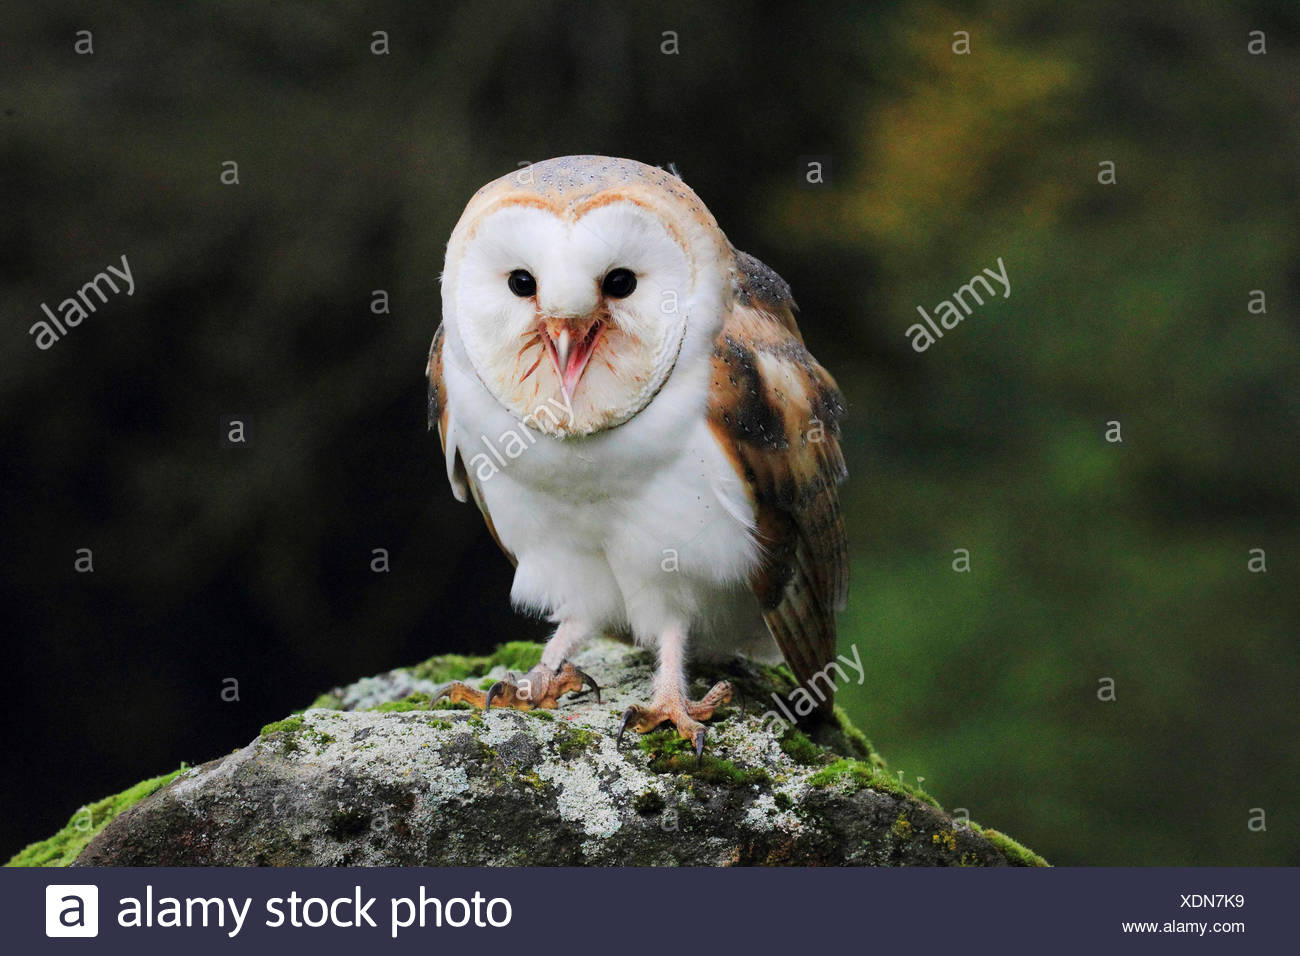 Barn owl (Tyto alba), sitting on a stone, front view, Germany Stock Photo